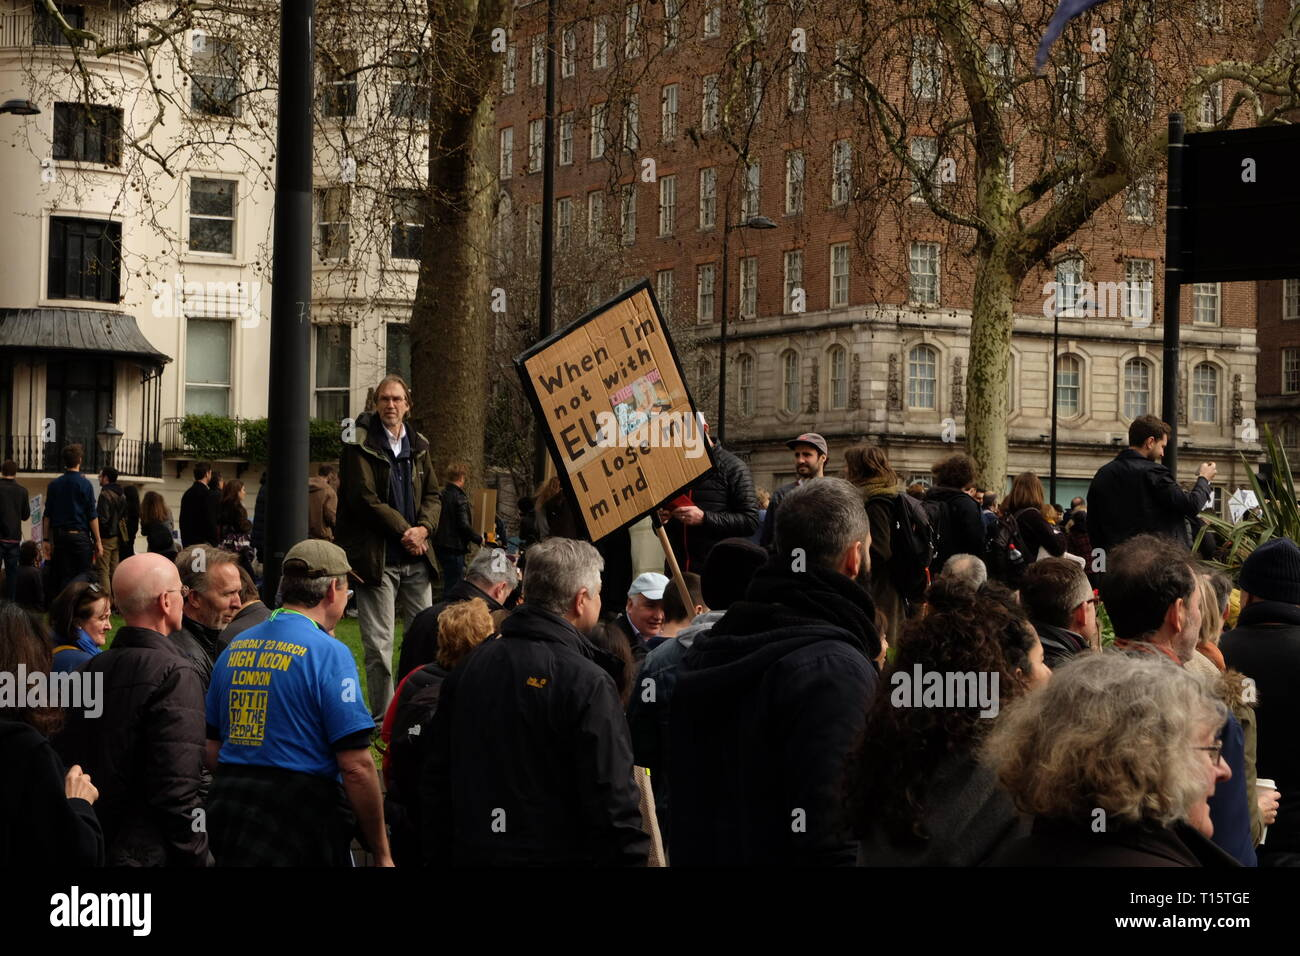 London, UK. 23rd Mar 2019. Remain supporters gathered in London and marched to Parliament Square demanding a second referendum on the issue of Brexit. The march was organized under the banner of People's Vote. Credit: Angus MacKinnon/Alamy Live News Stock Photo